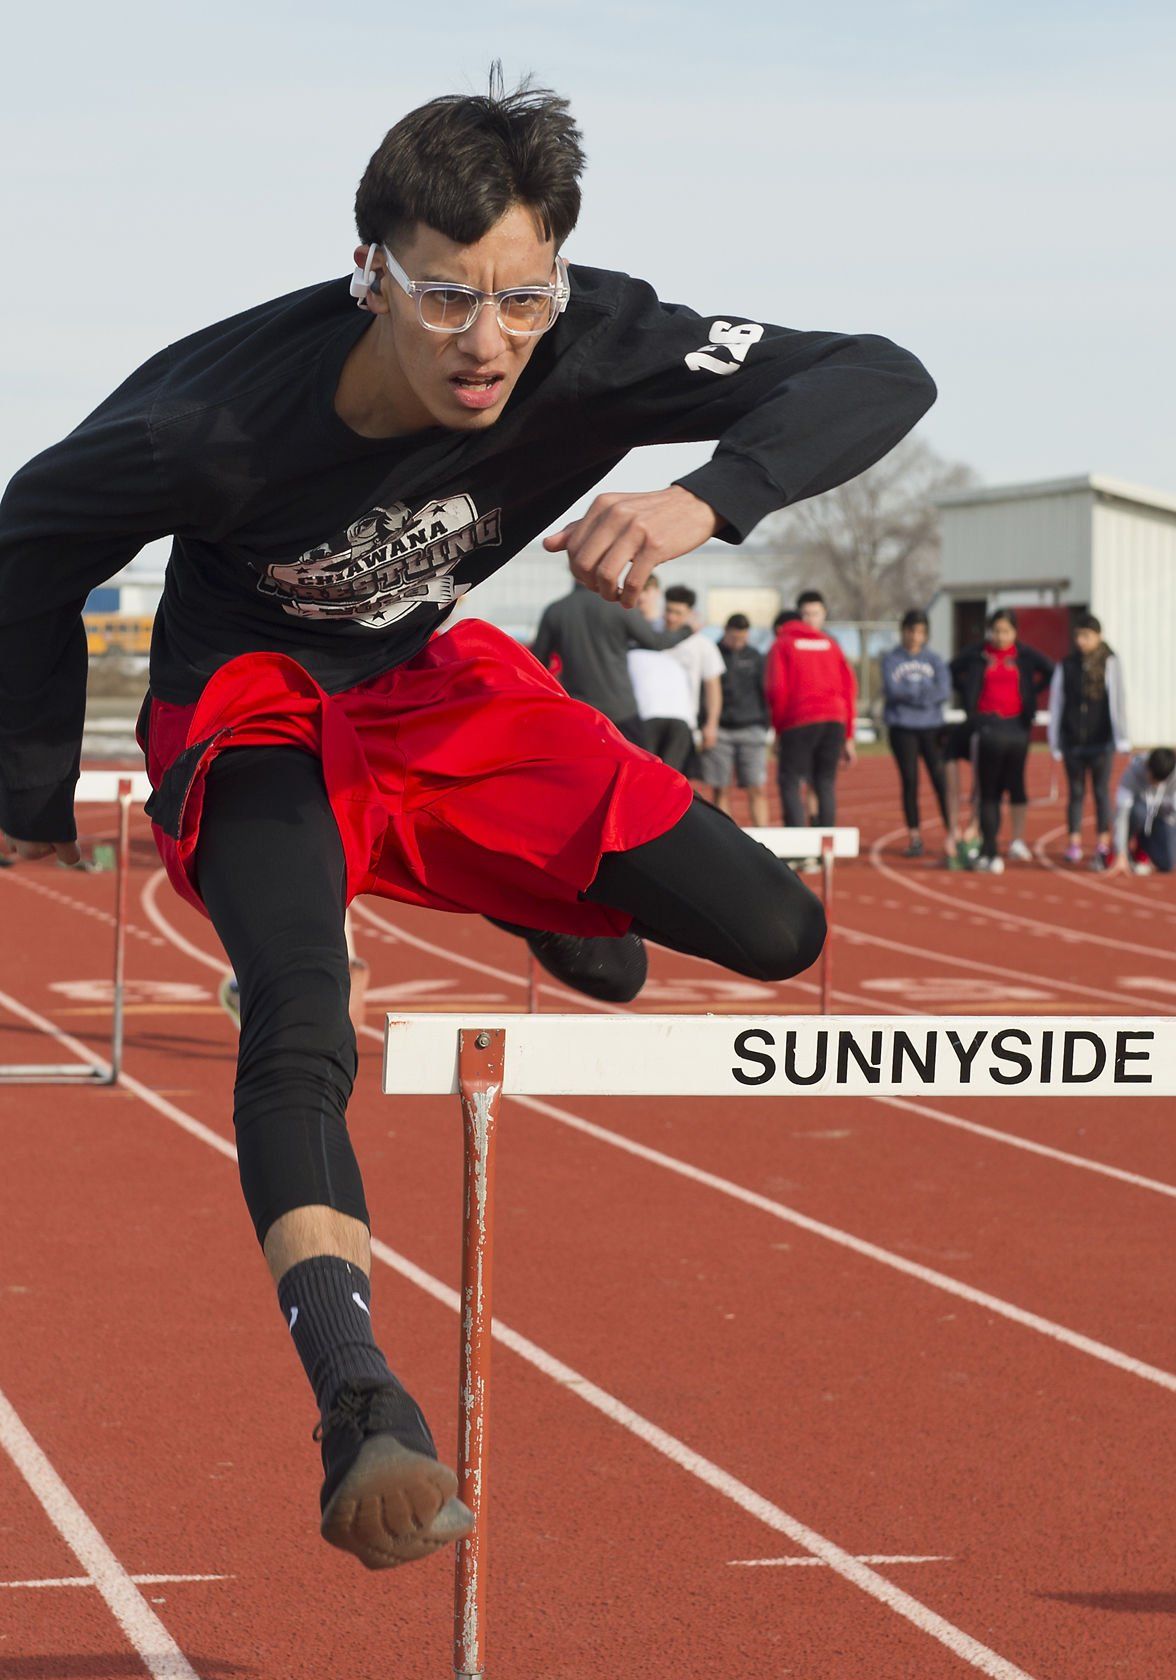 Sunnyside track team runs toward spring